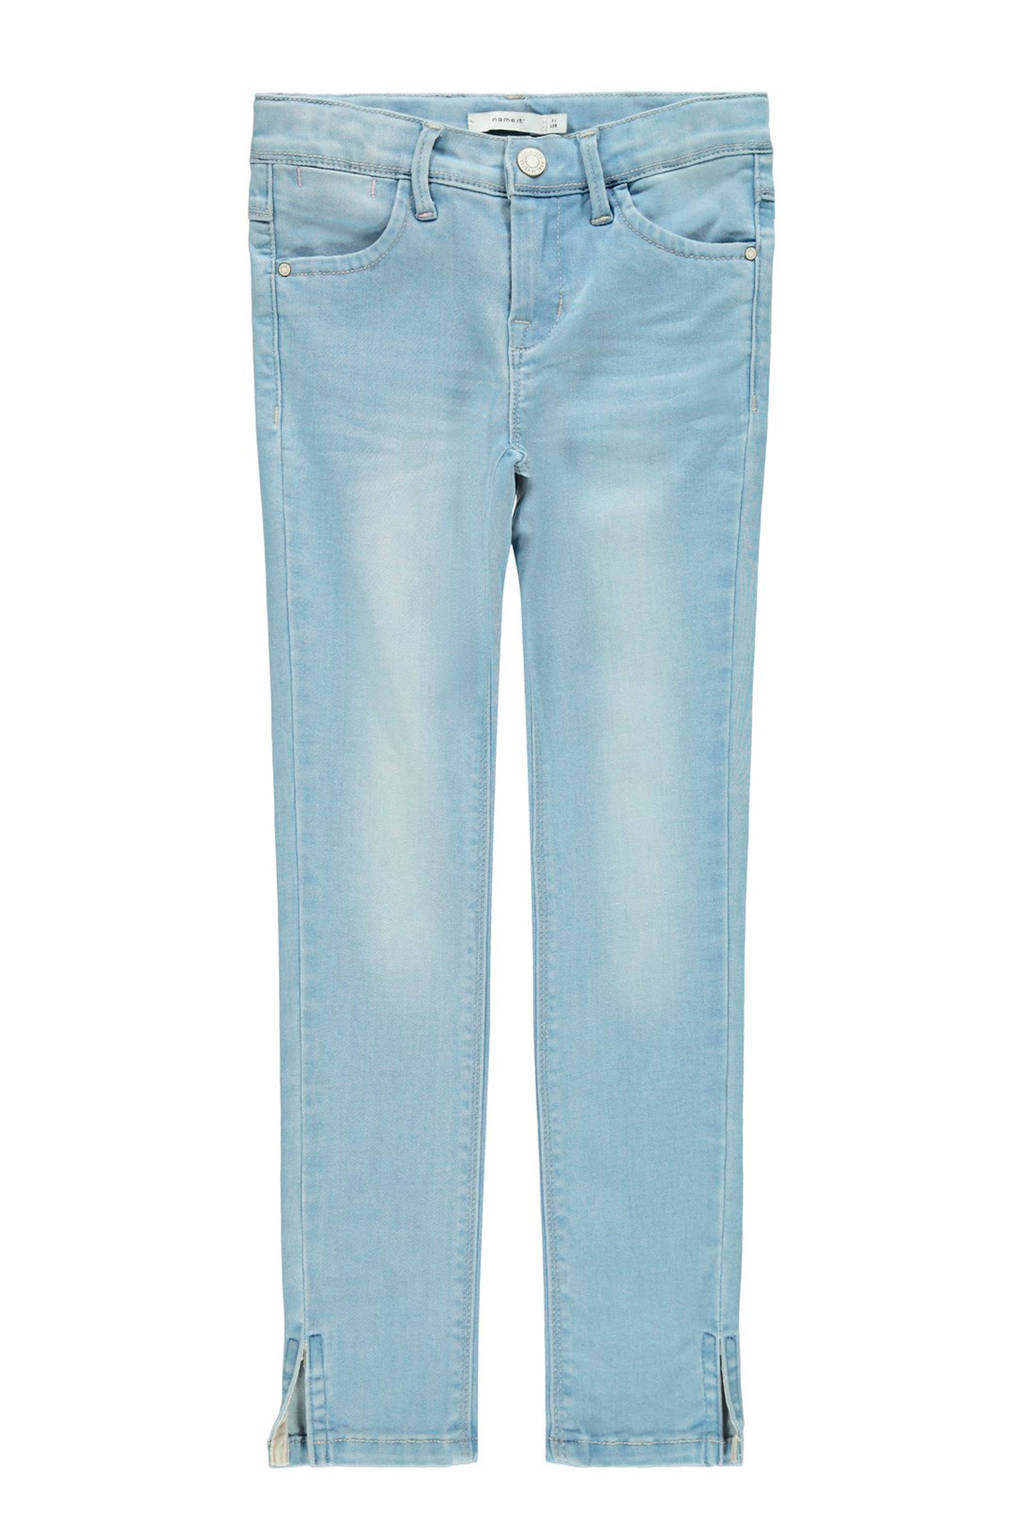 NAME IT KIDS cropped skinny jeans Polly light denim bleached, Light denim bleached